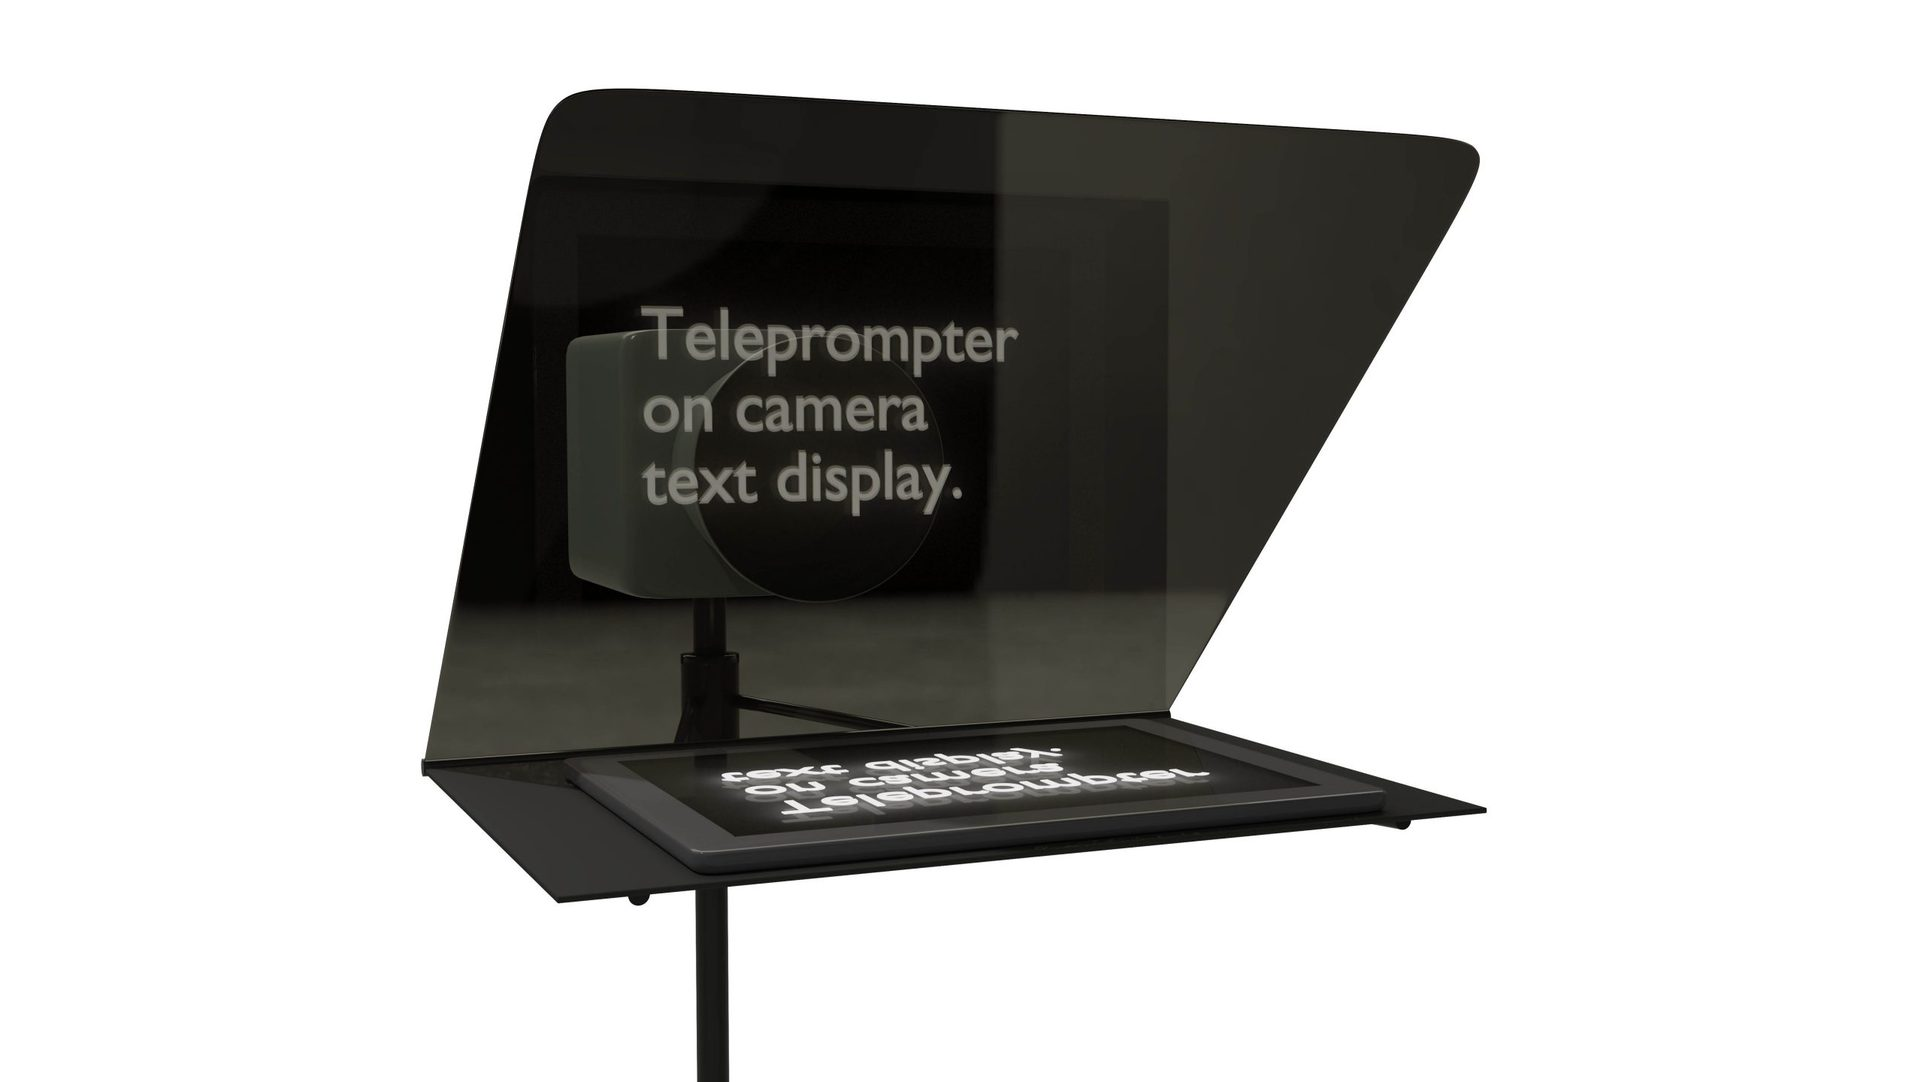 iPad on Portable Teleprompters